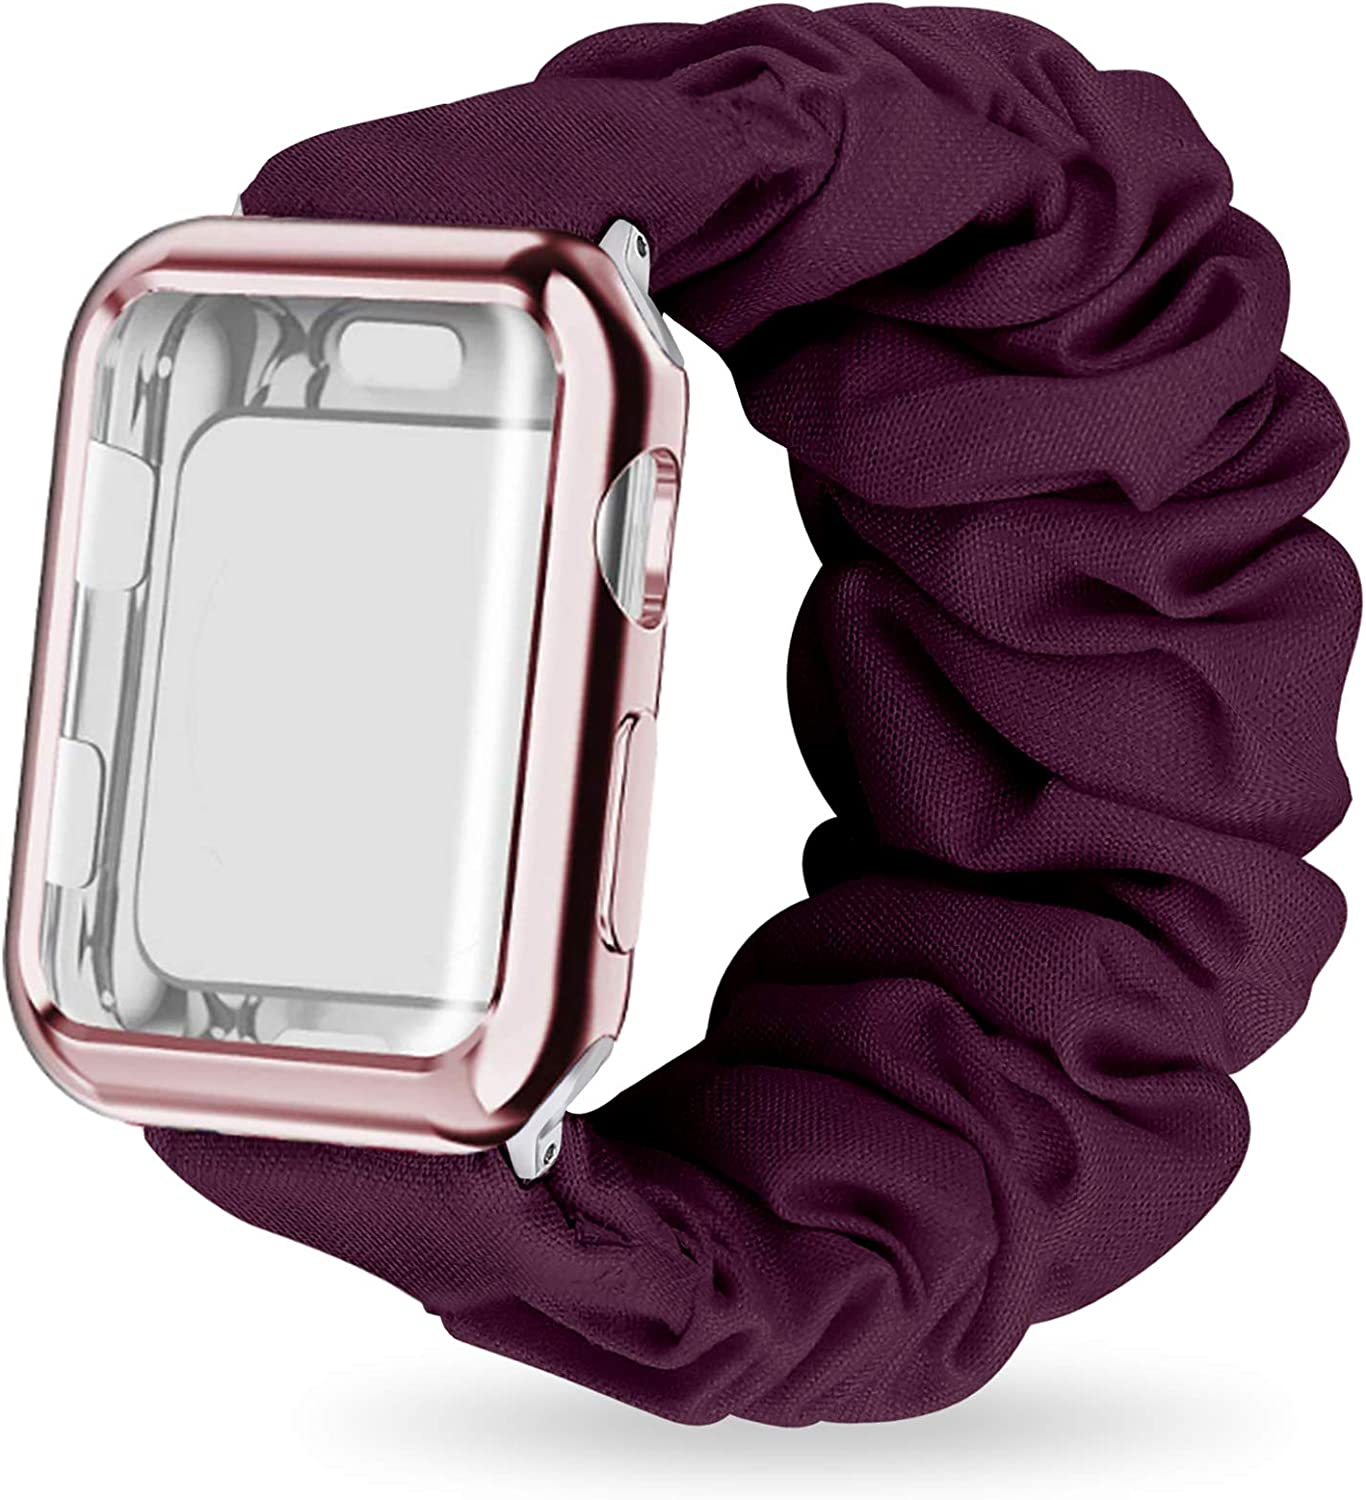 MORETEK Scrunchie Watch Band Compatible with Apple Watch Bands 38mm 40mm 42mm 44mm with Screen Protector Case Women,Soft Replacement Wristband Compatible for iWatch Series 6 SE 5 4 3 2 1